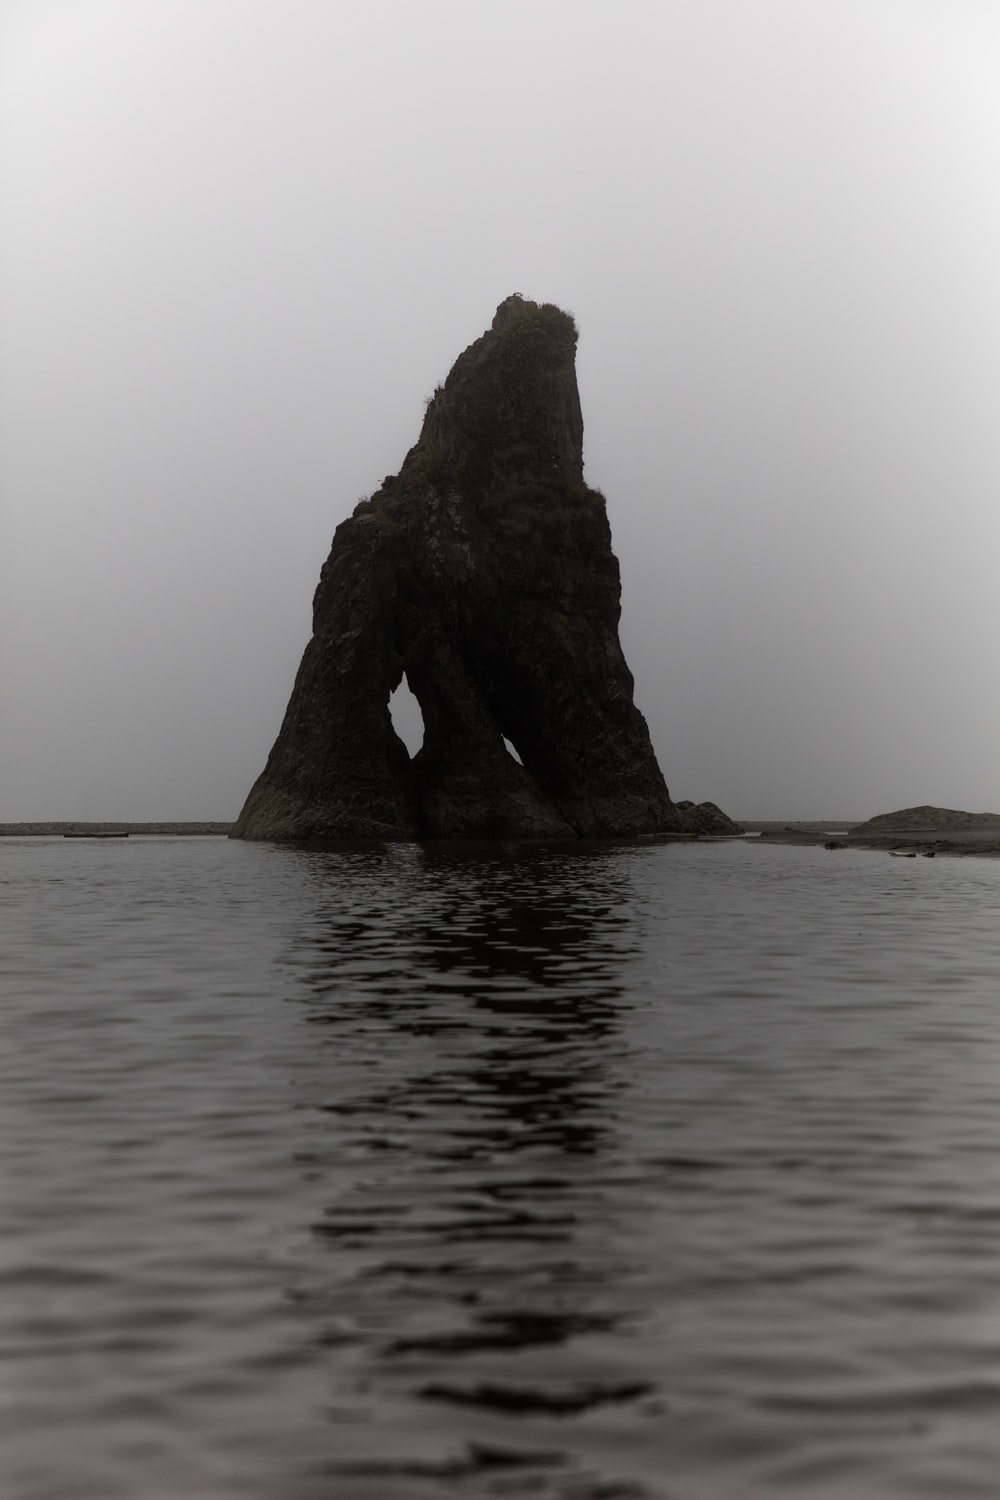 rock formation on body water